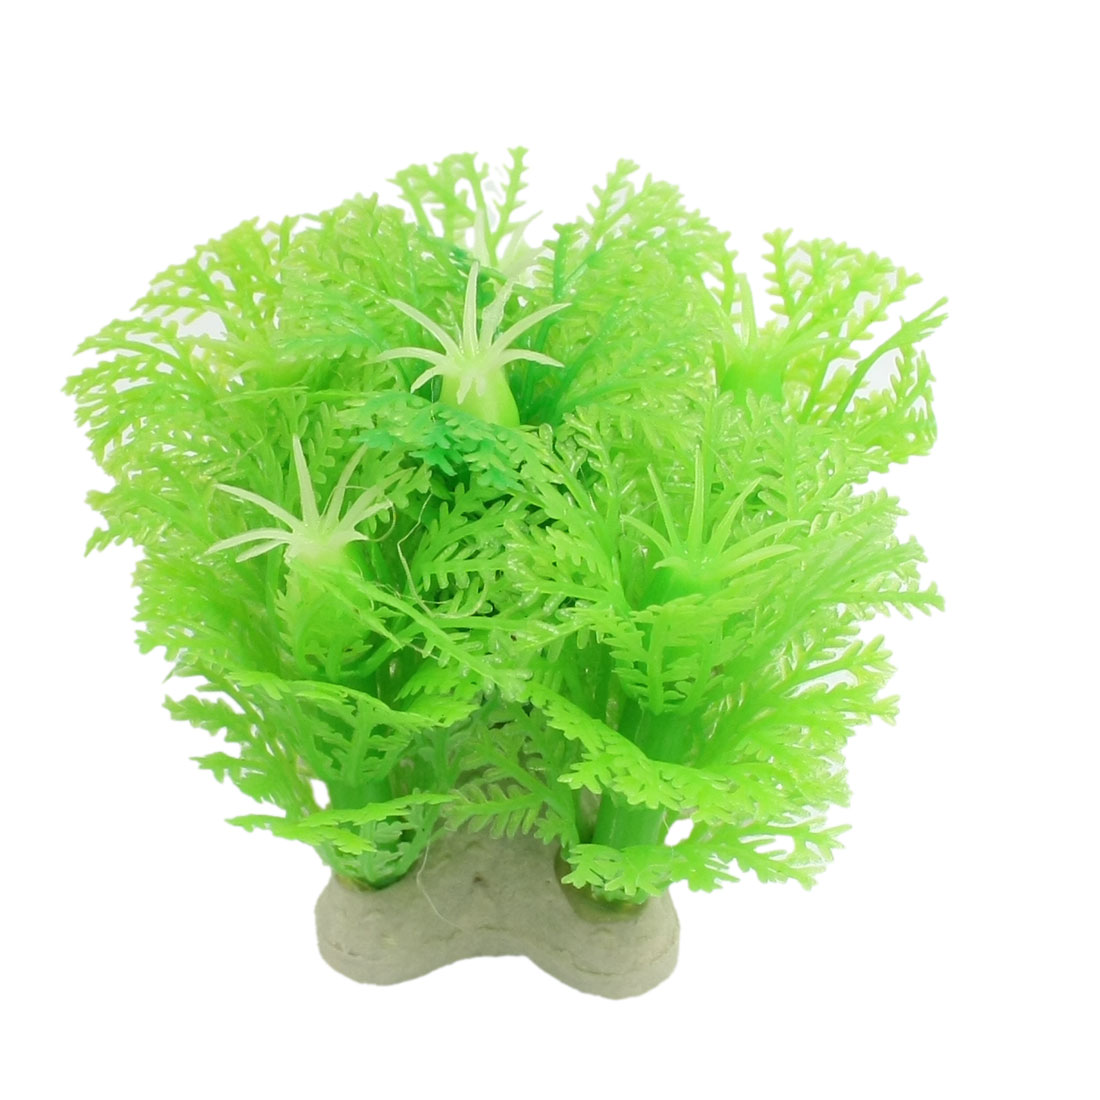 Green Plastic Snowflake Design Fish Tank Ornament Plant Landscaping 2.1""